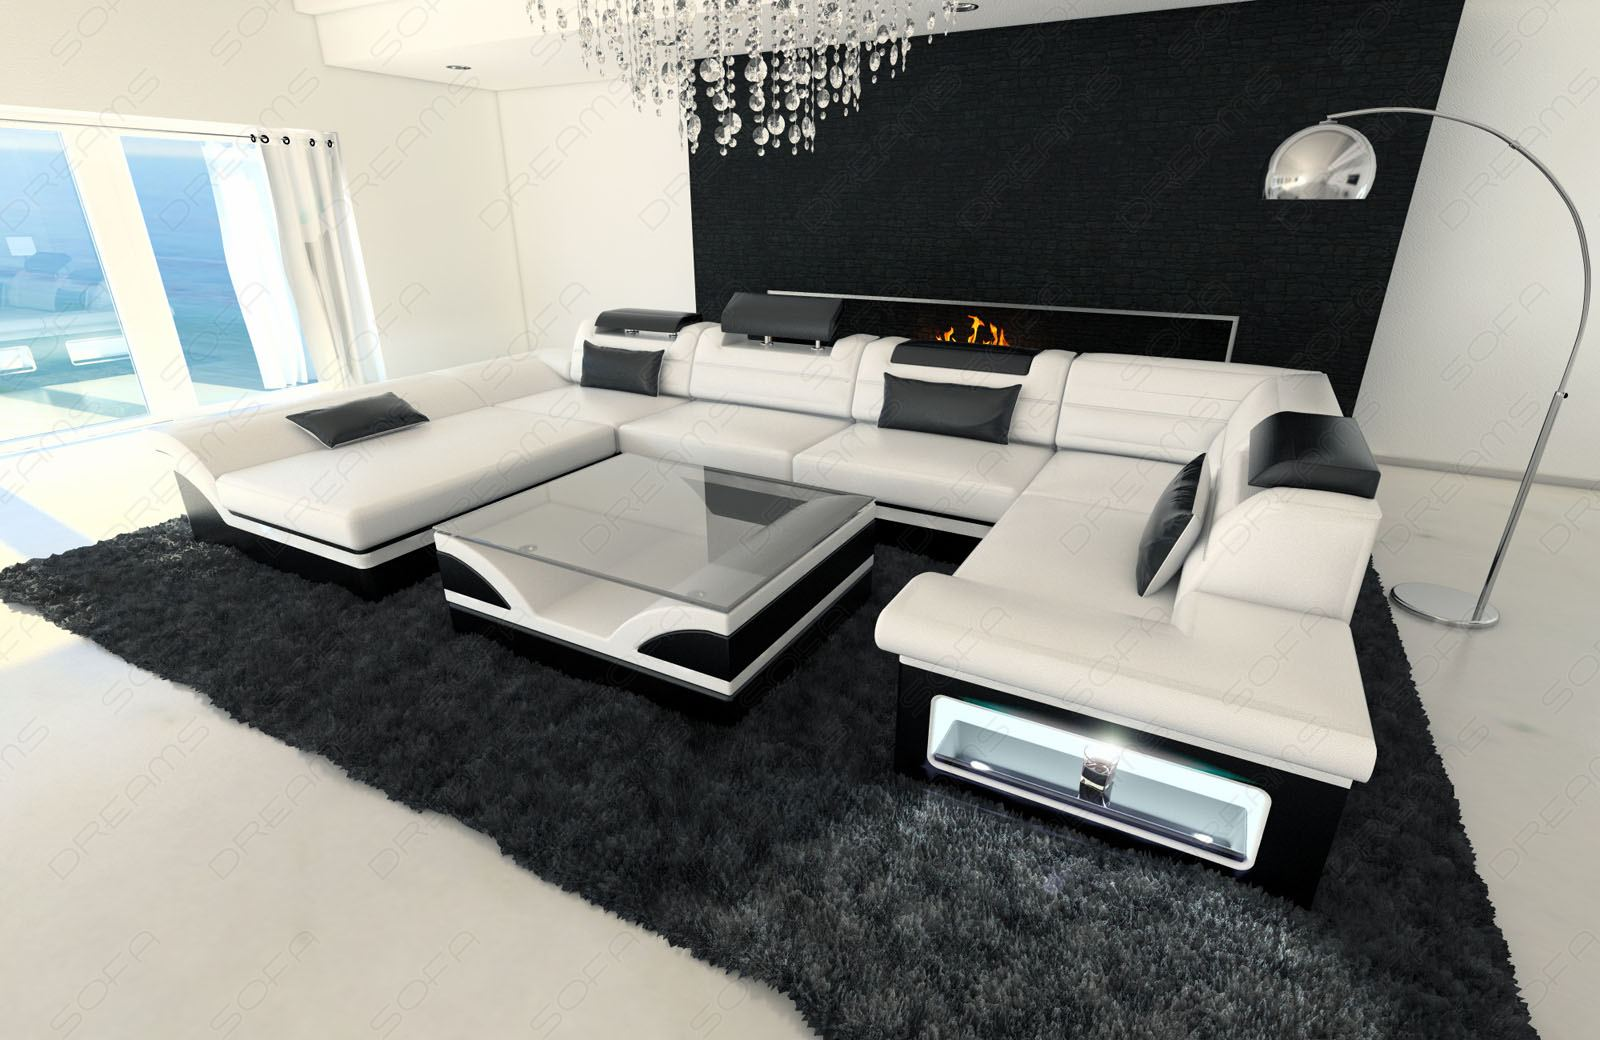 Sofa Dreams Uk Leather Interior Design Enzo U Shaped Sofa With Led